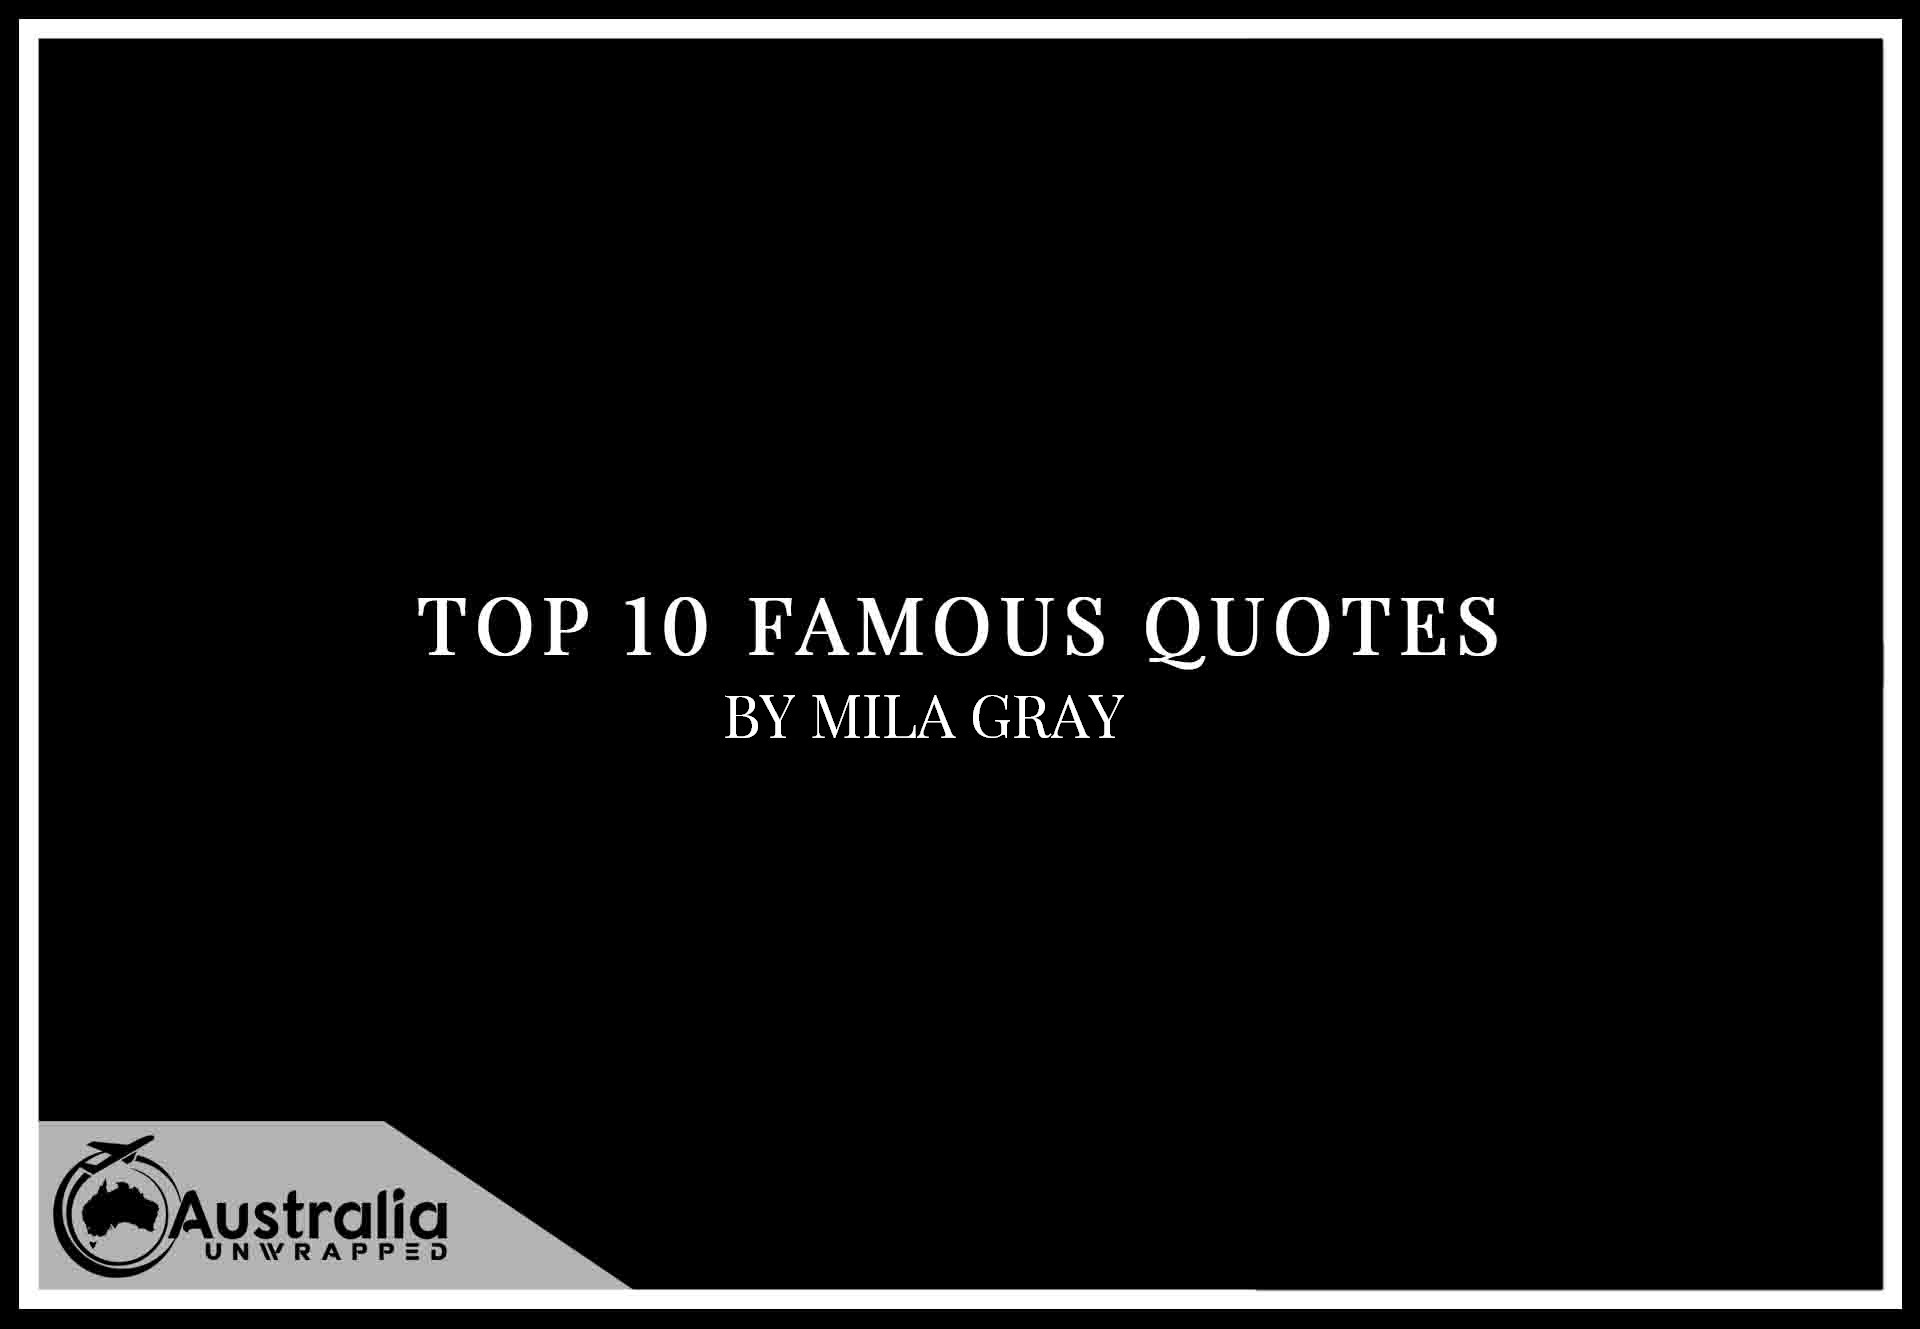 Top 10 Famous Quotes by Author Mila Gray